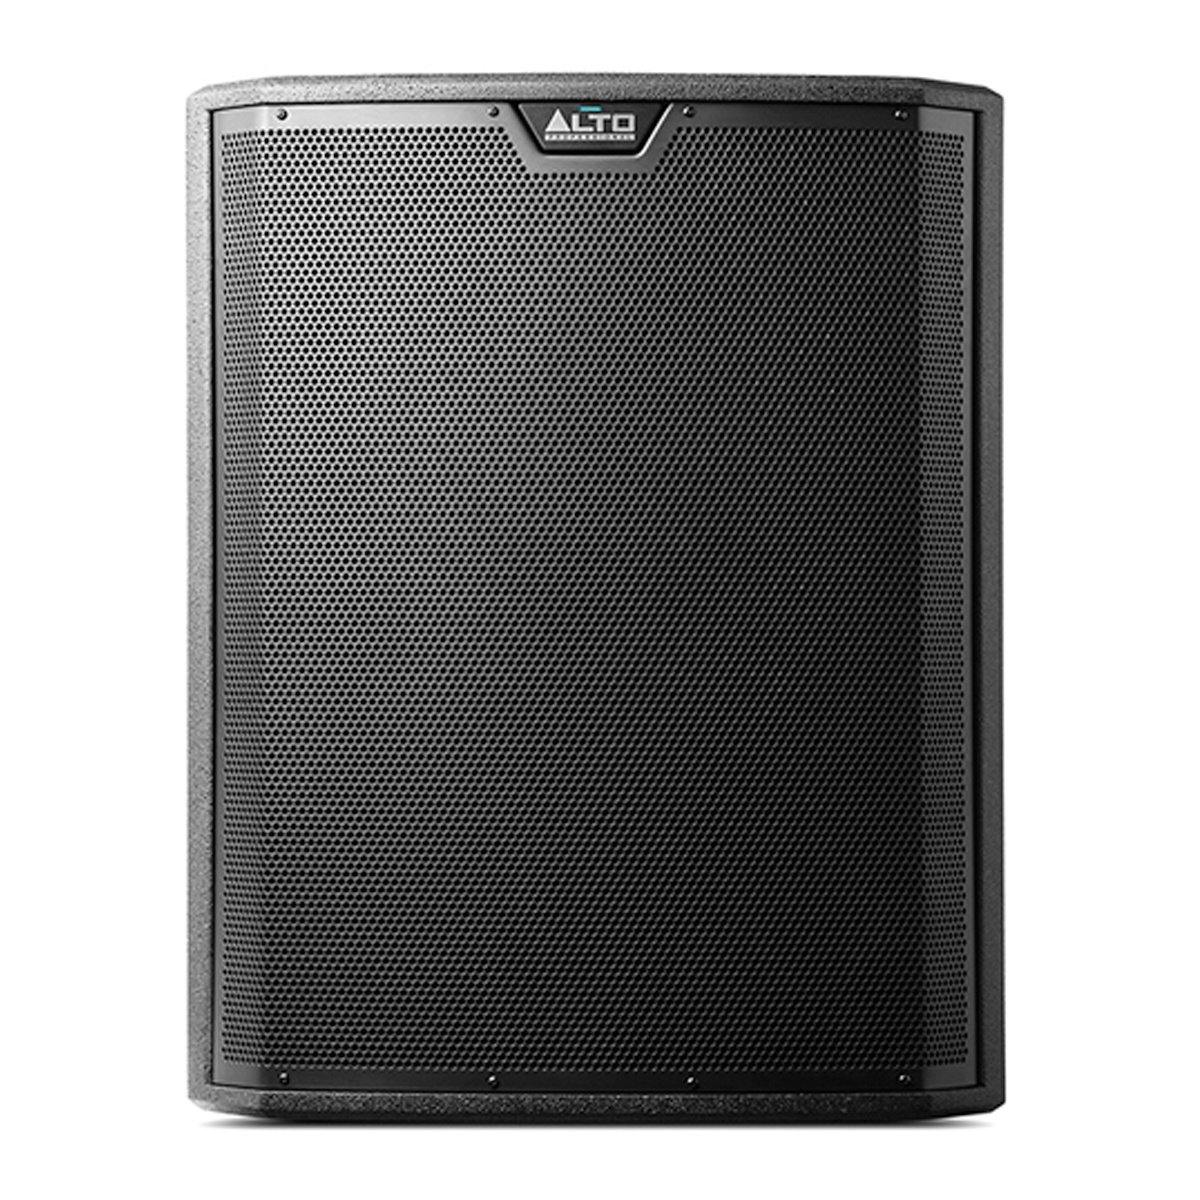 "Alto Pro Truesonic TS318S Powered 18"" 2000W Subwoofer - ICONS Shop"